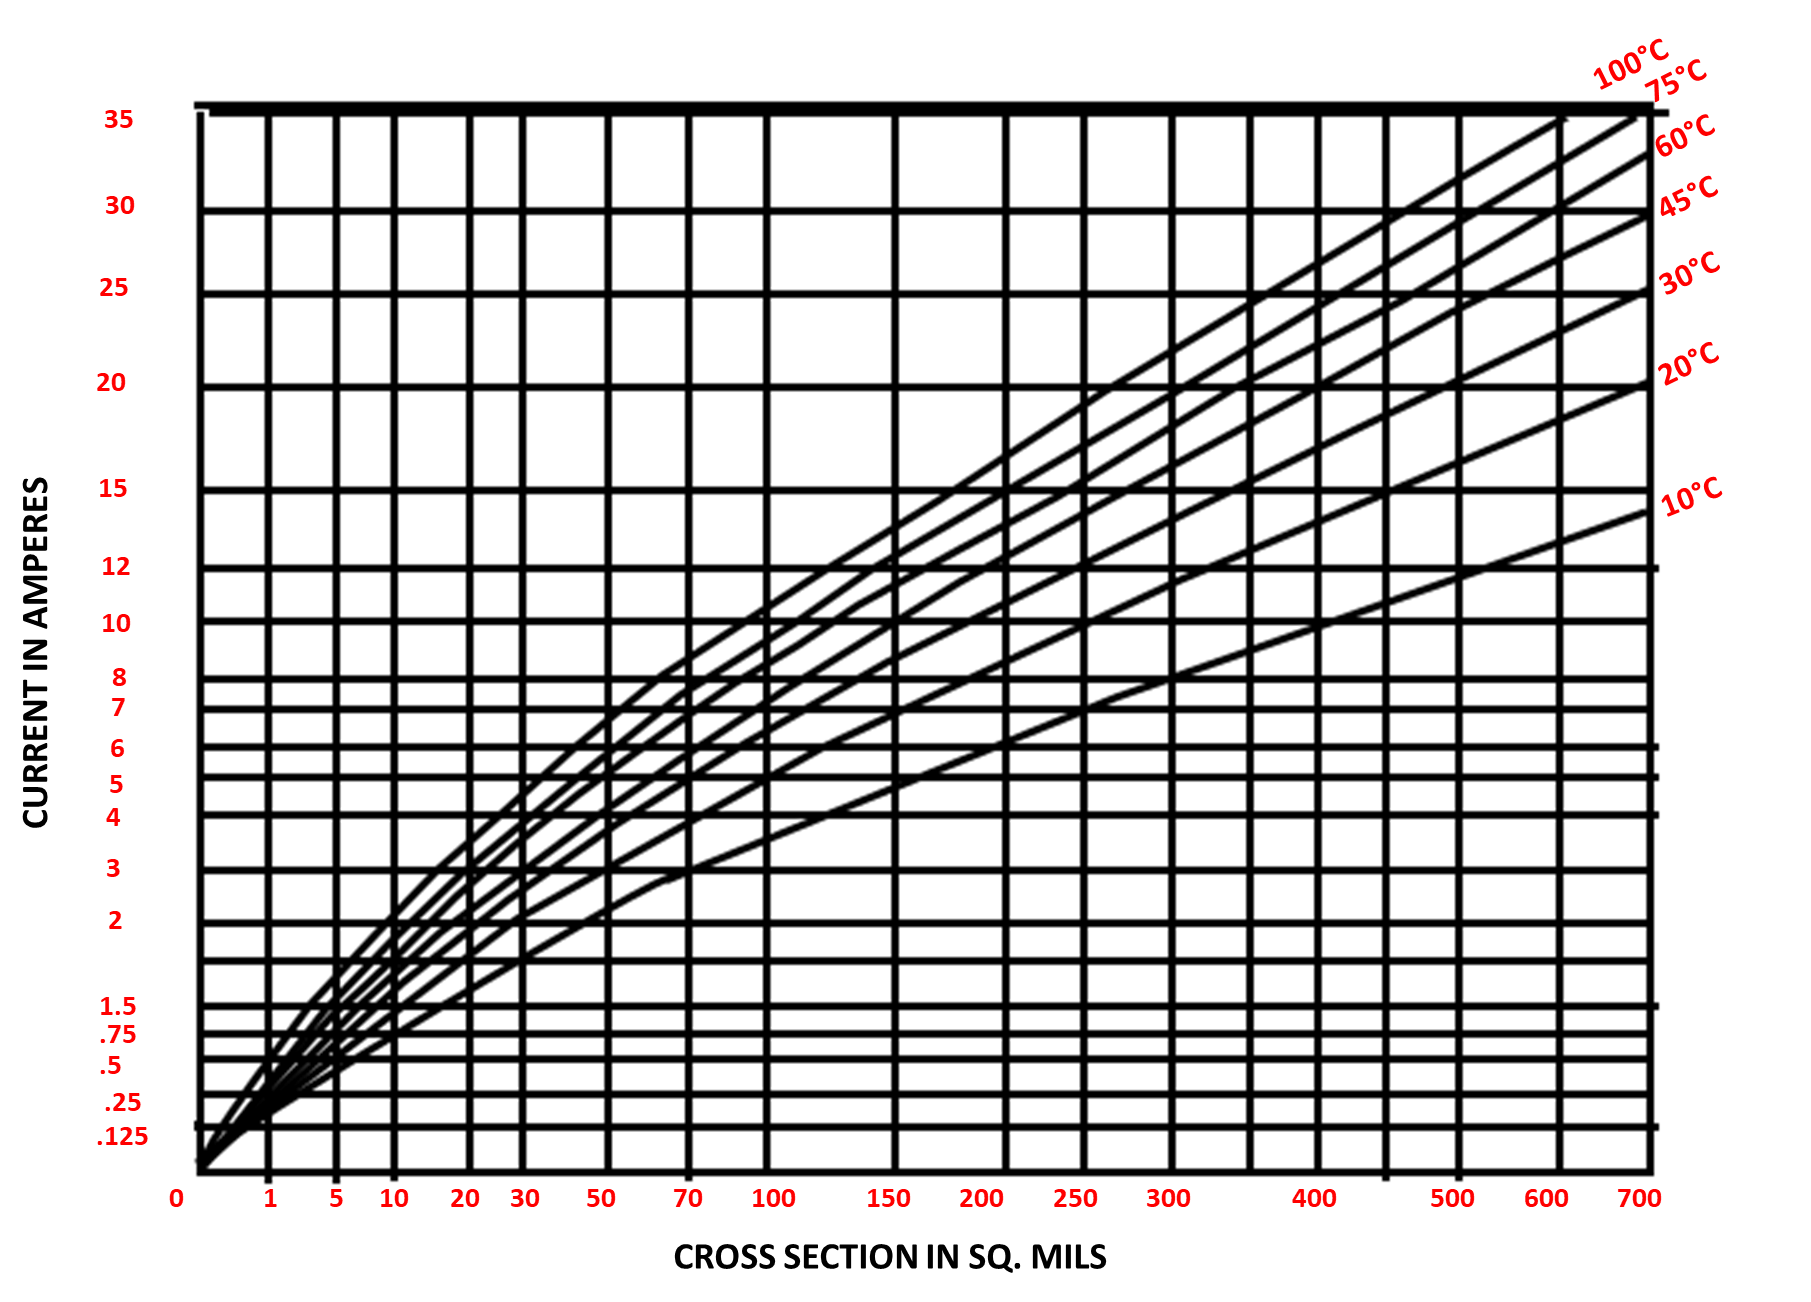 Current vs crosssection for external conductor